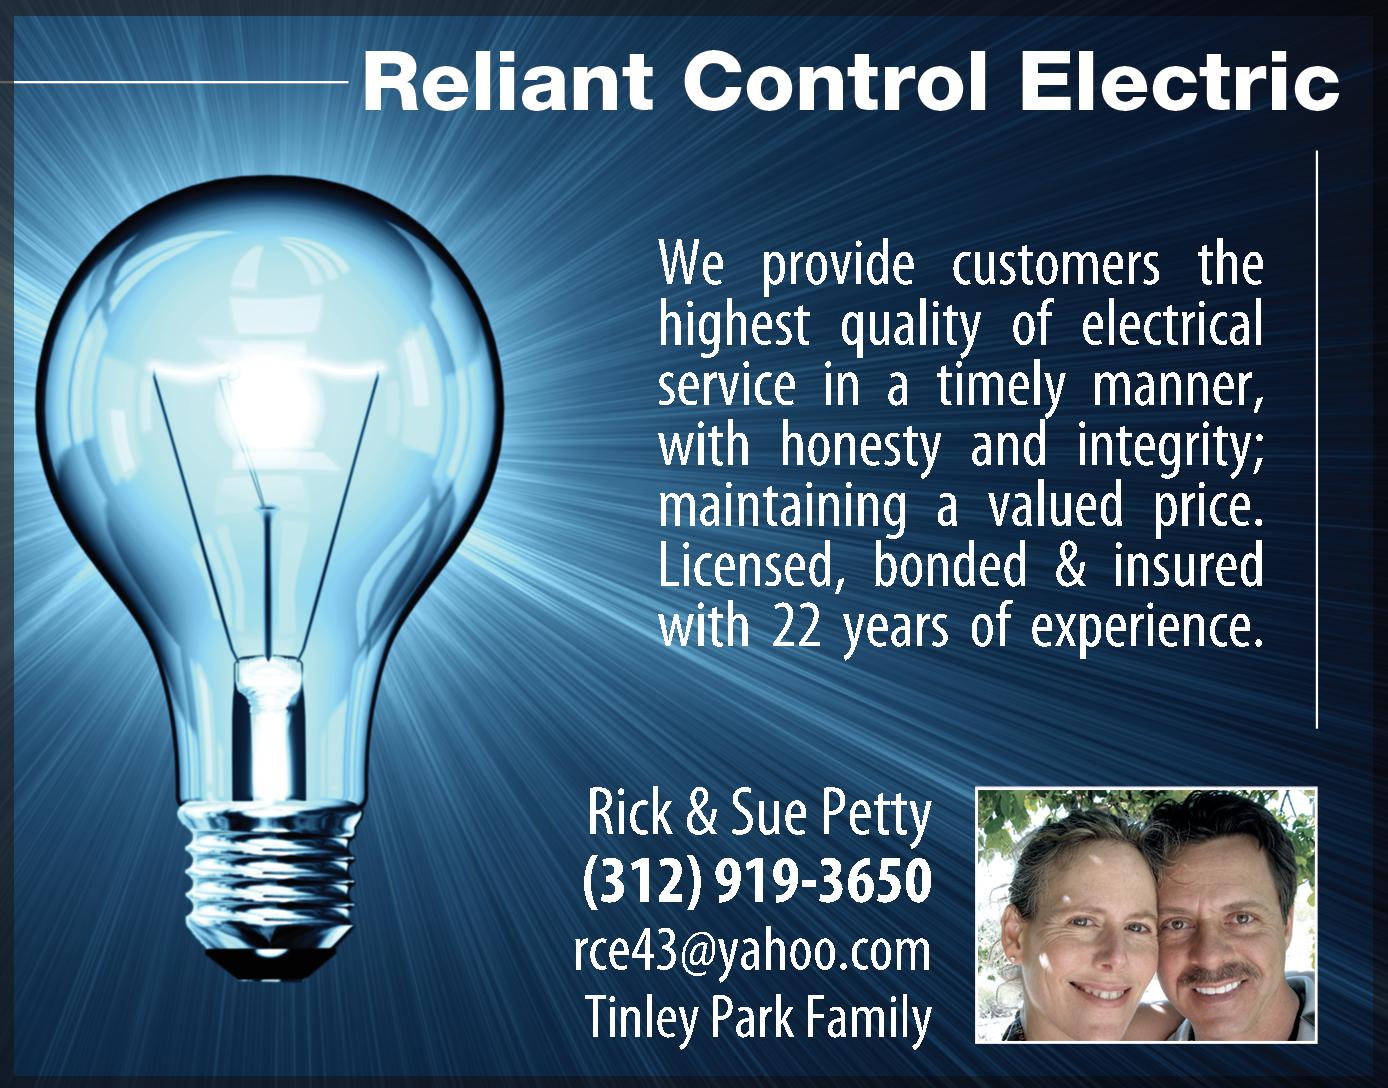 Reliant Control Electric